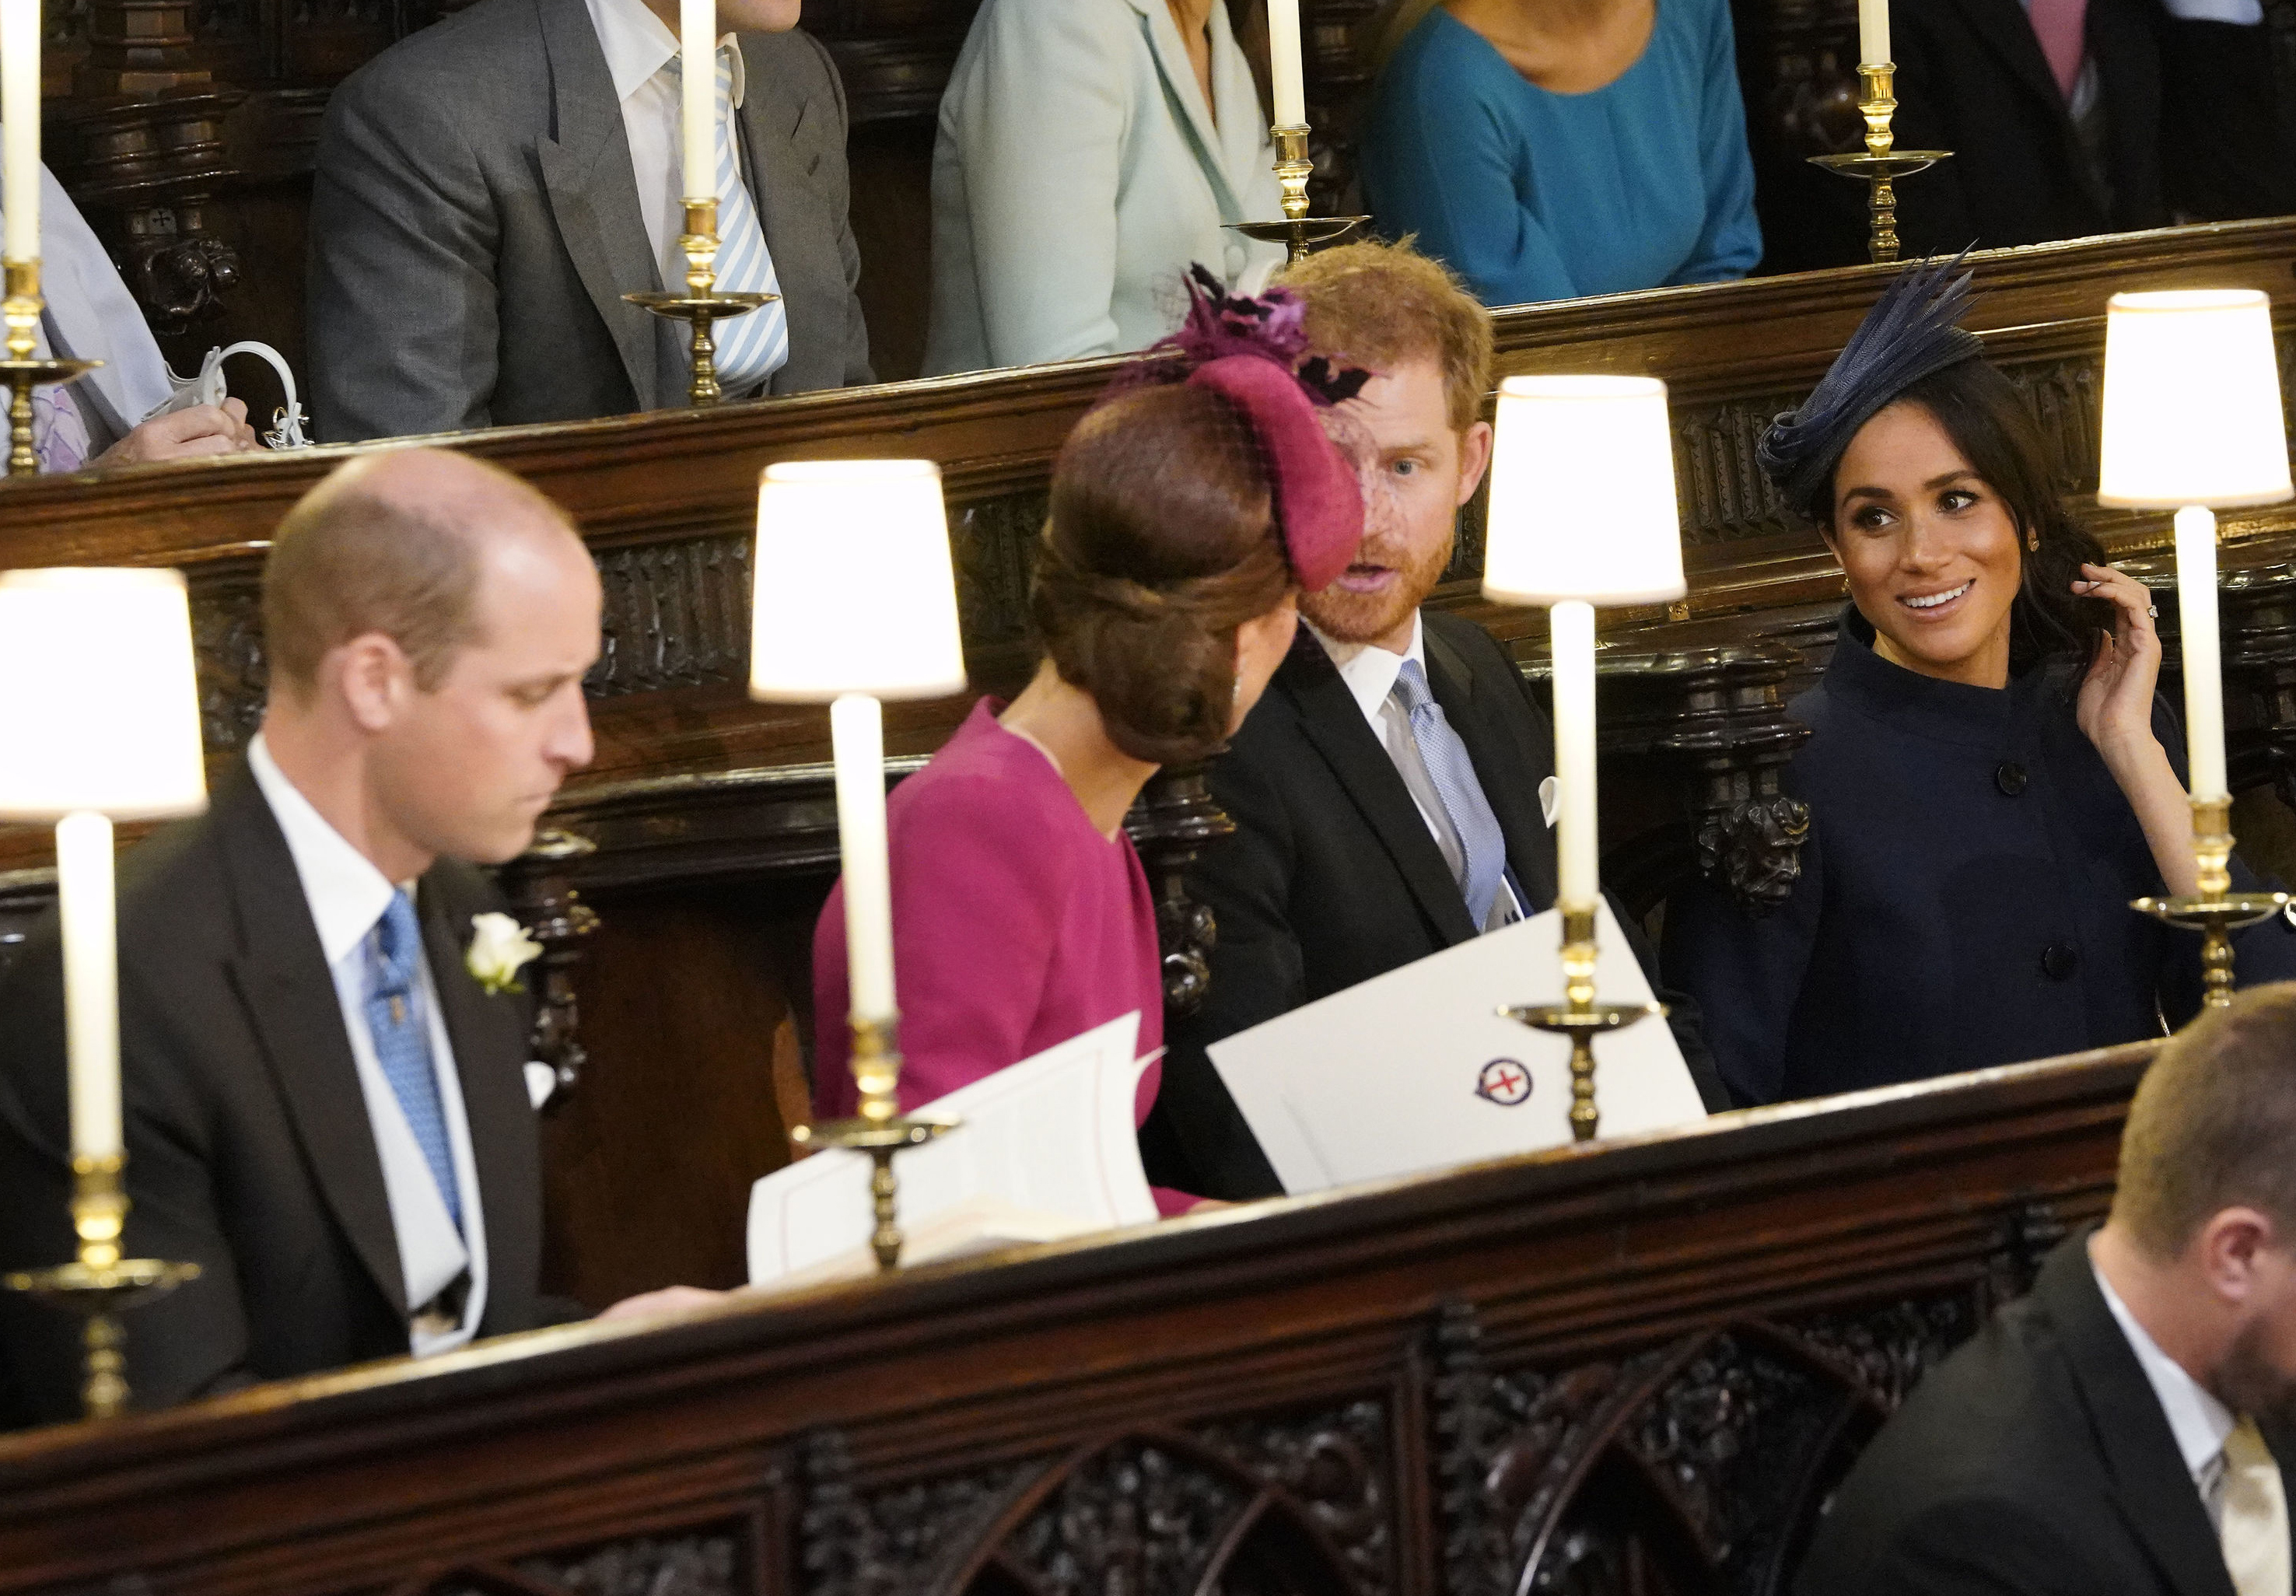 <div class='meta'><div class='origin-logo' data-origin='none'></div><span class='caption-text' data-credit='Danny Lawson/Pool via AP'>Prince William, Kate Duchess of Cambridge, Prince Harry and Meghan Duchess of Sussex take their seats ahead of the wedding of Princess Eugenie of York and Jack Brooksbank.</span></div>